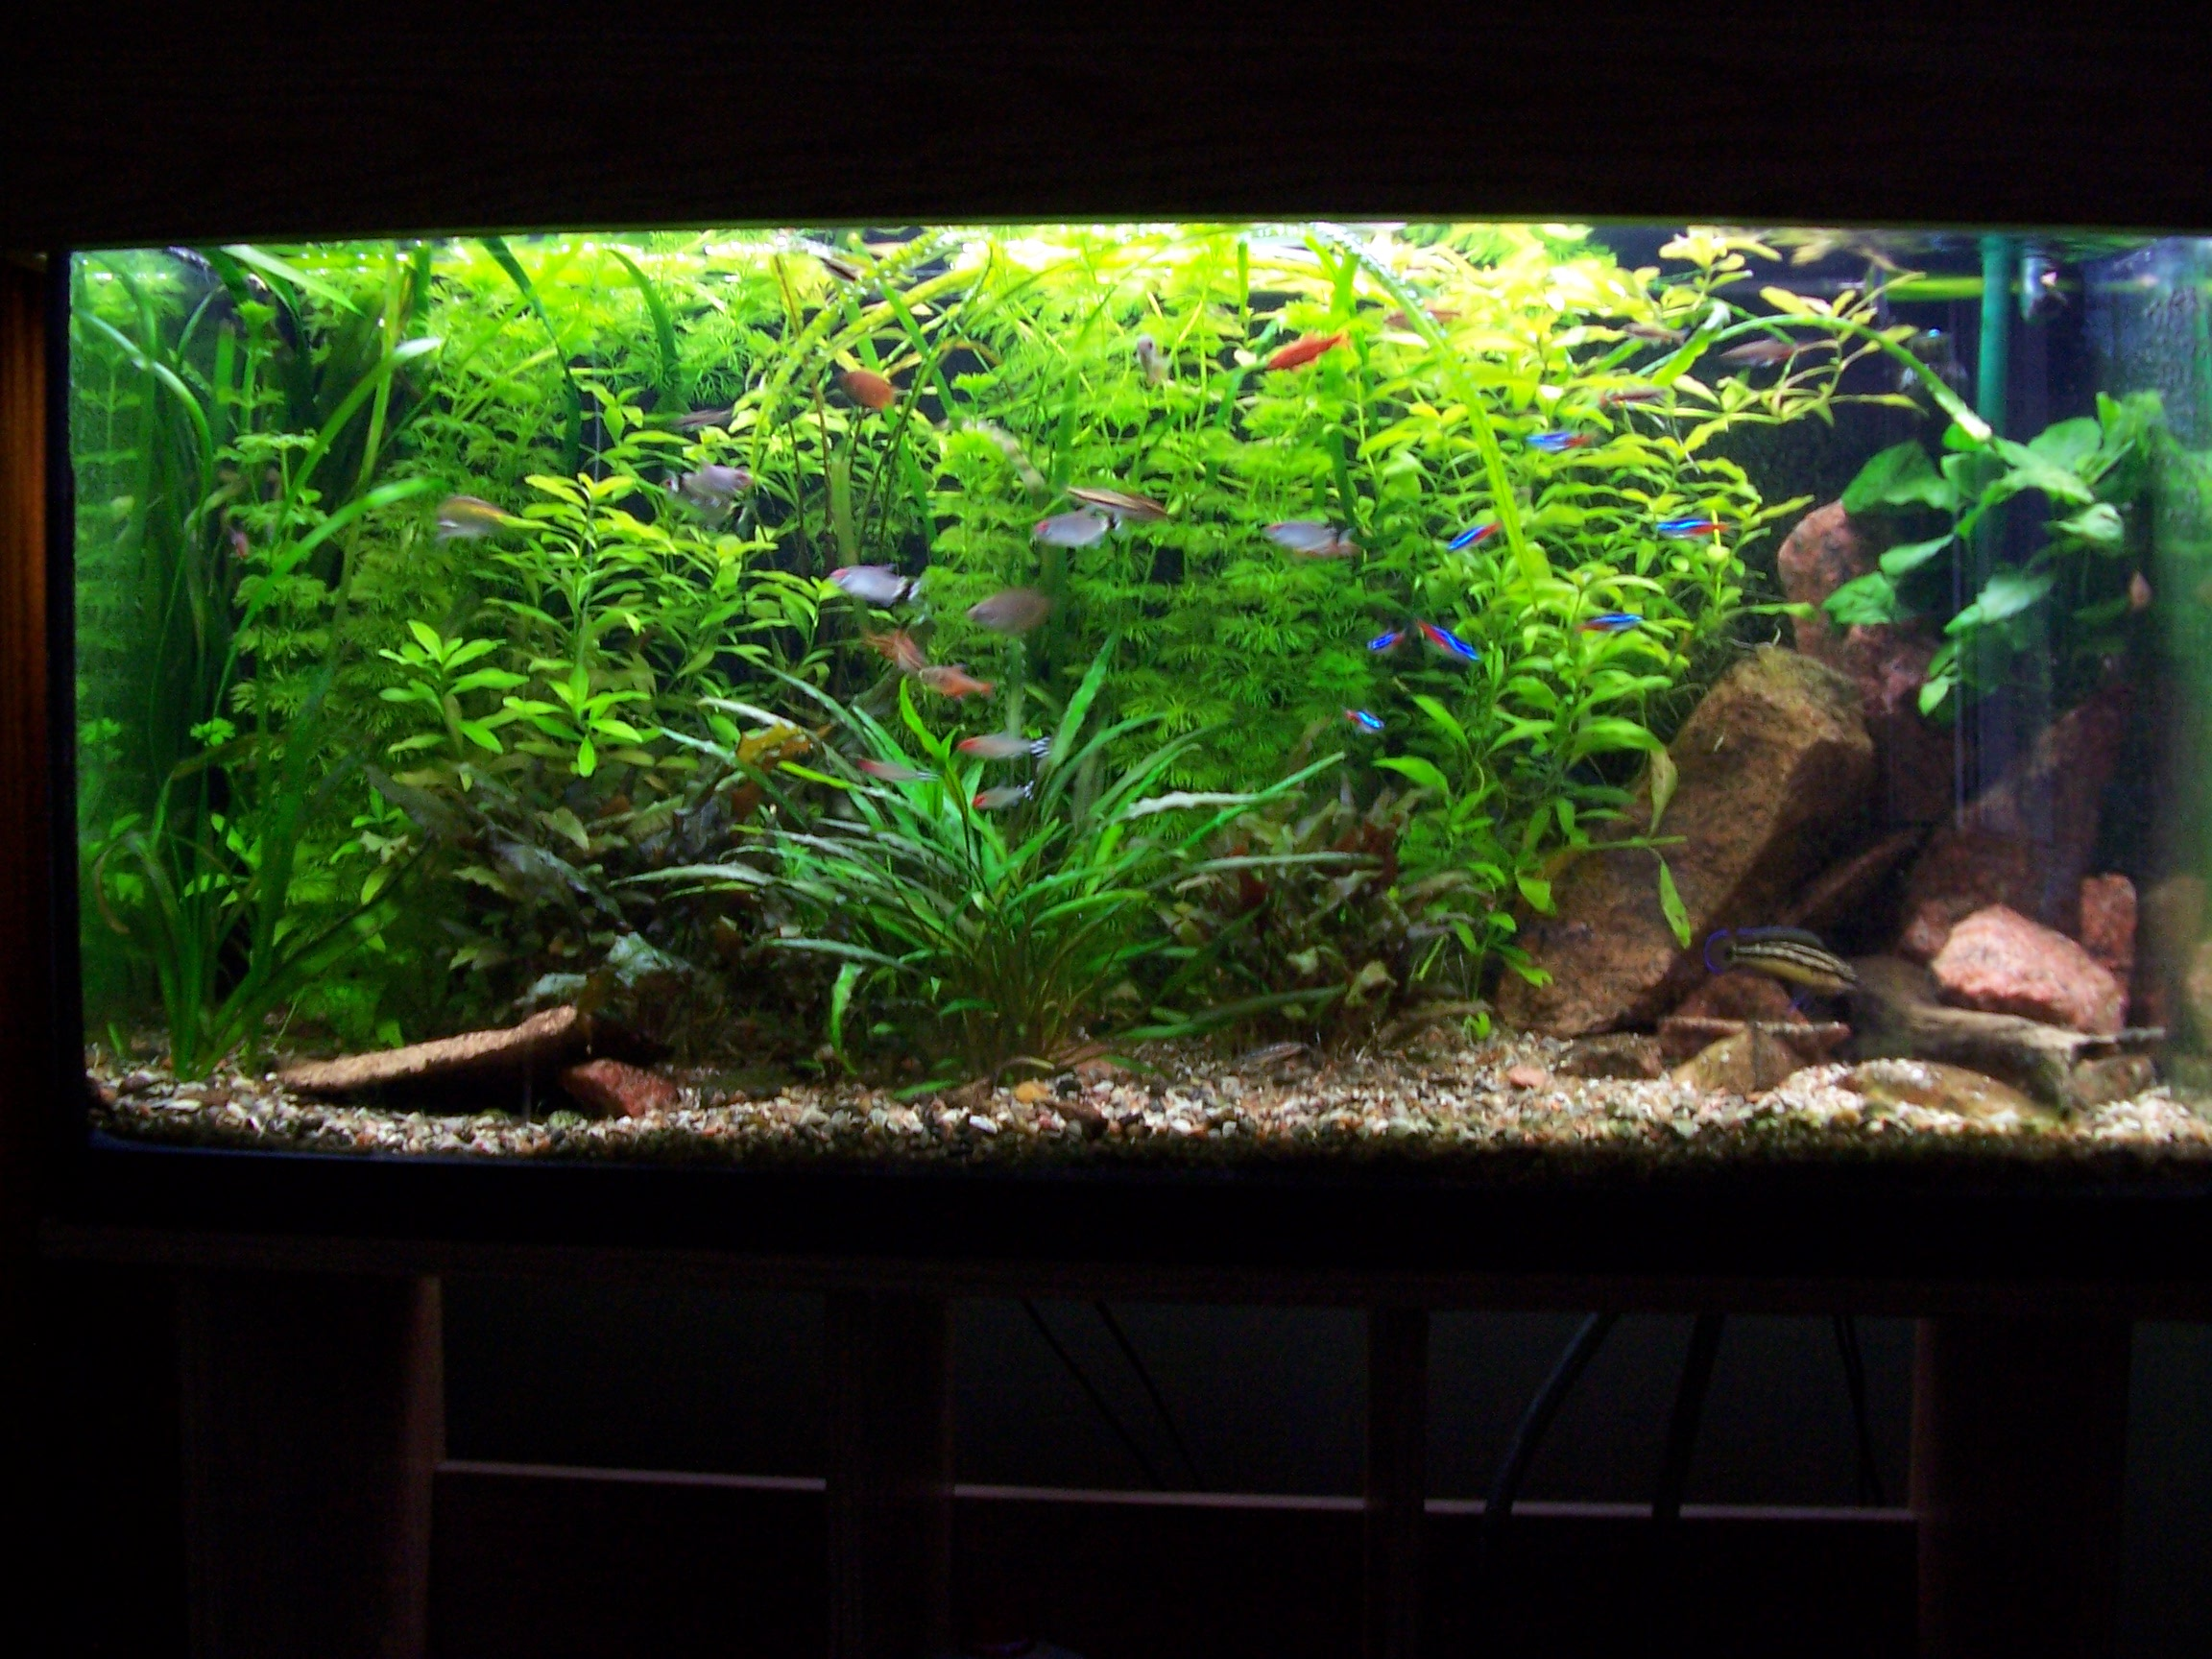 20 gallon fish tank ideas pictures to pin on pinterest for 10 gallon fish tank stocking ideas